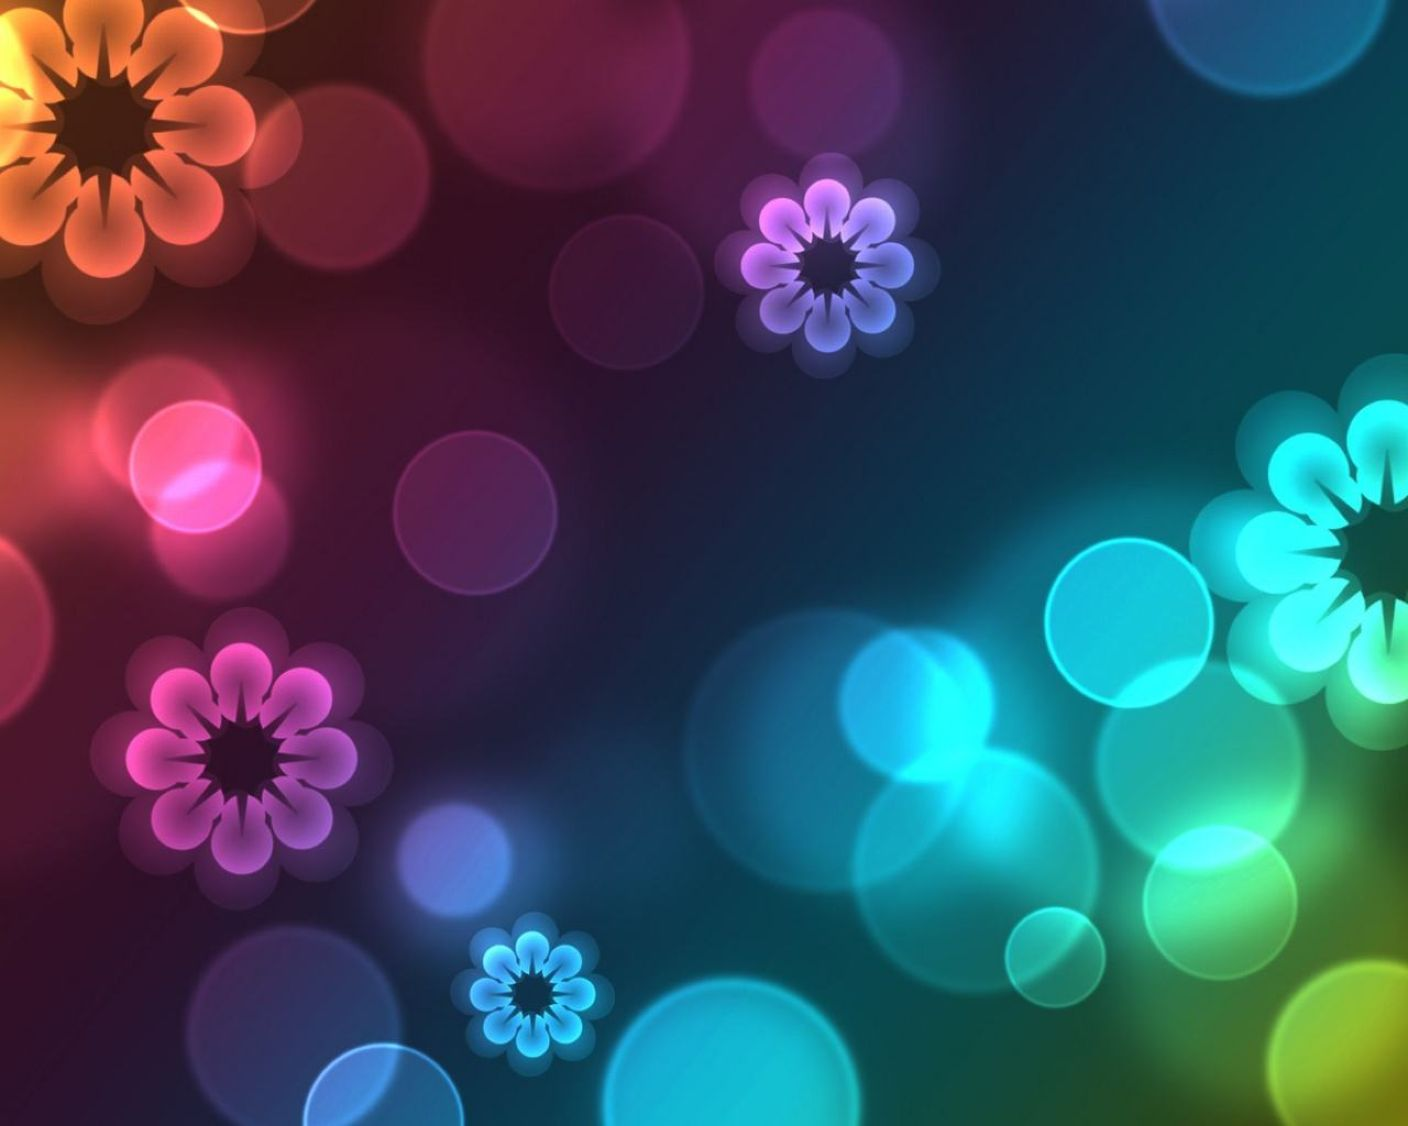 Download free HD Abstract Background Images for Website Wallpaper, image